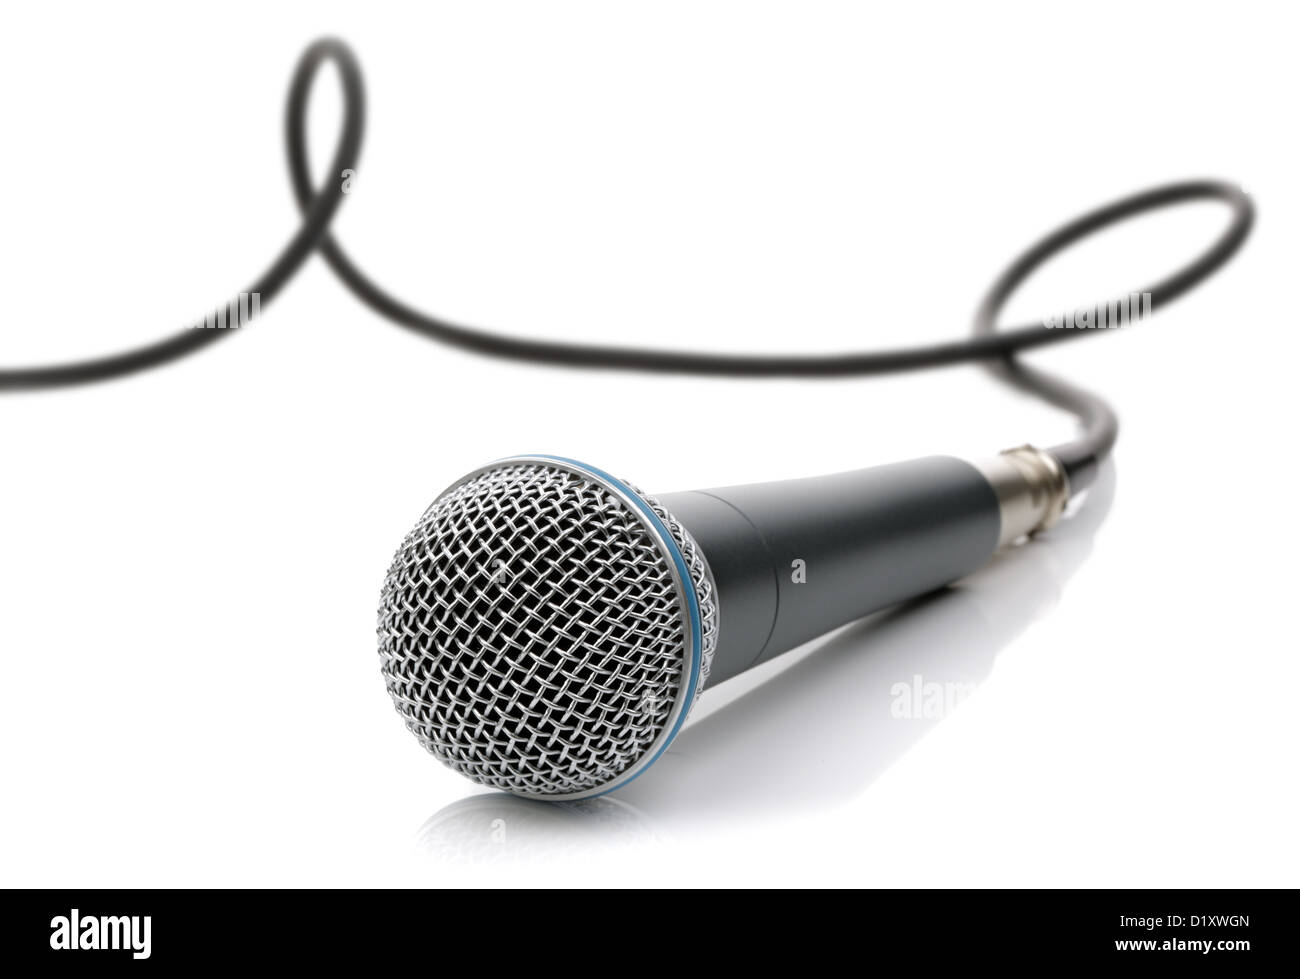 Microphone with cable - Stock Image